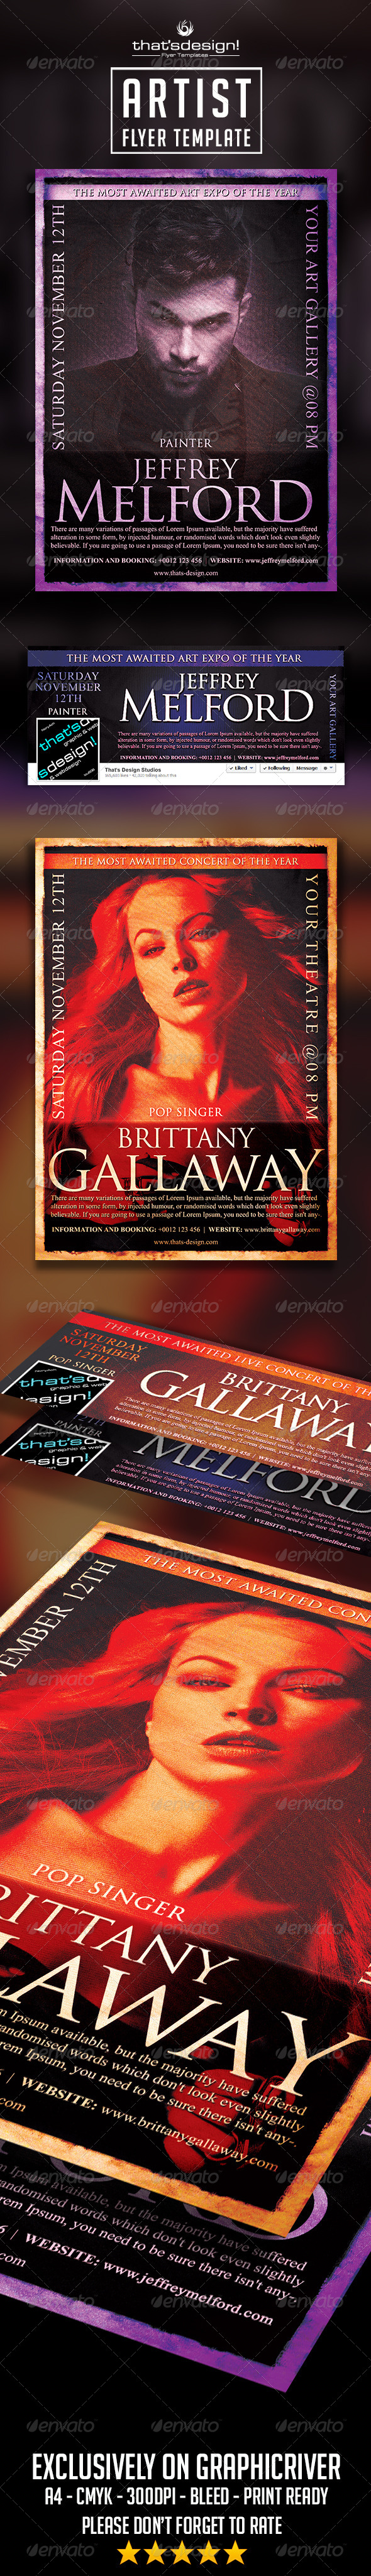 Artist Flyer Template - Concerts Events